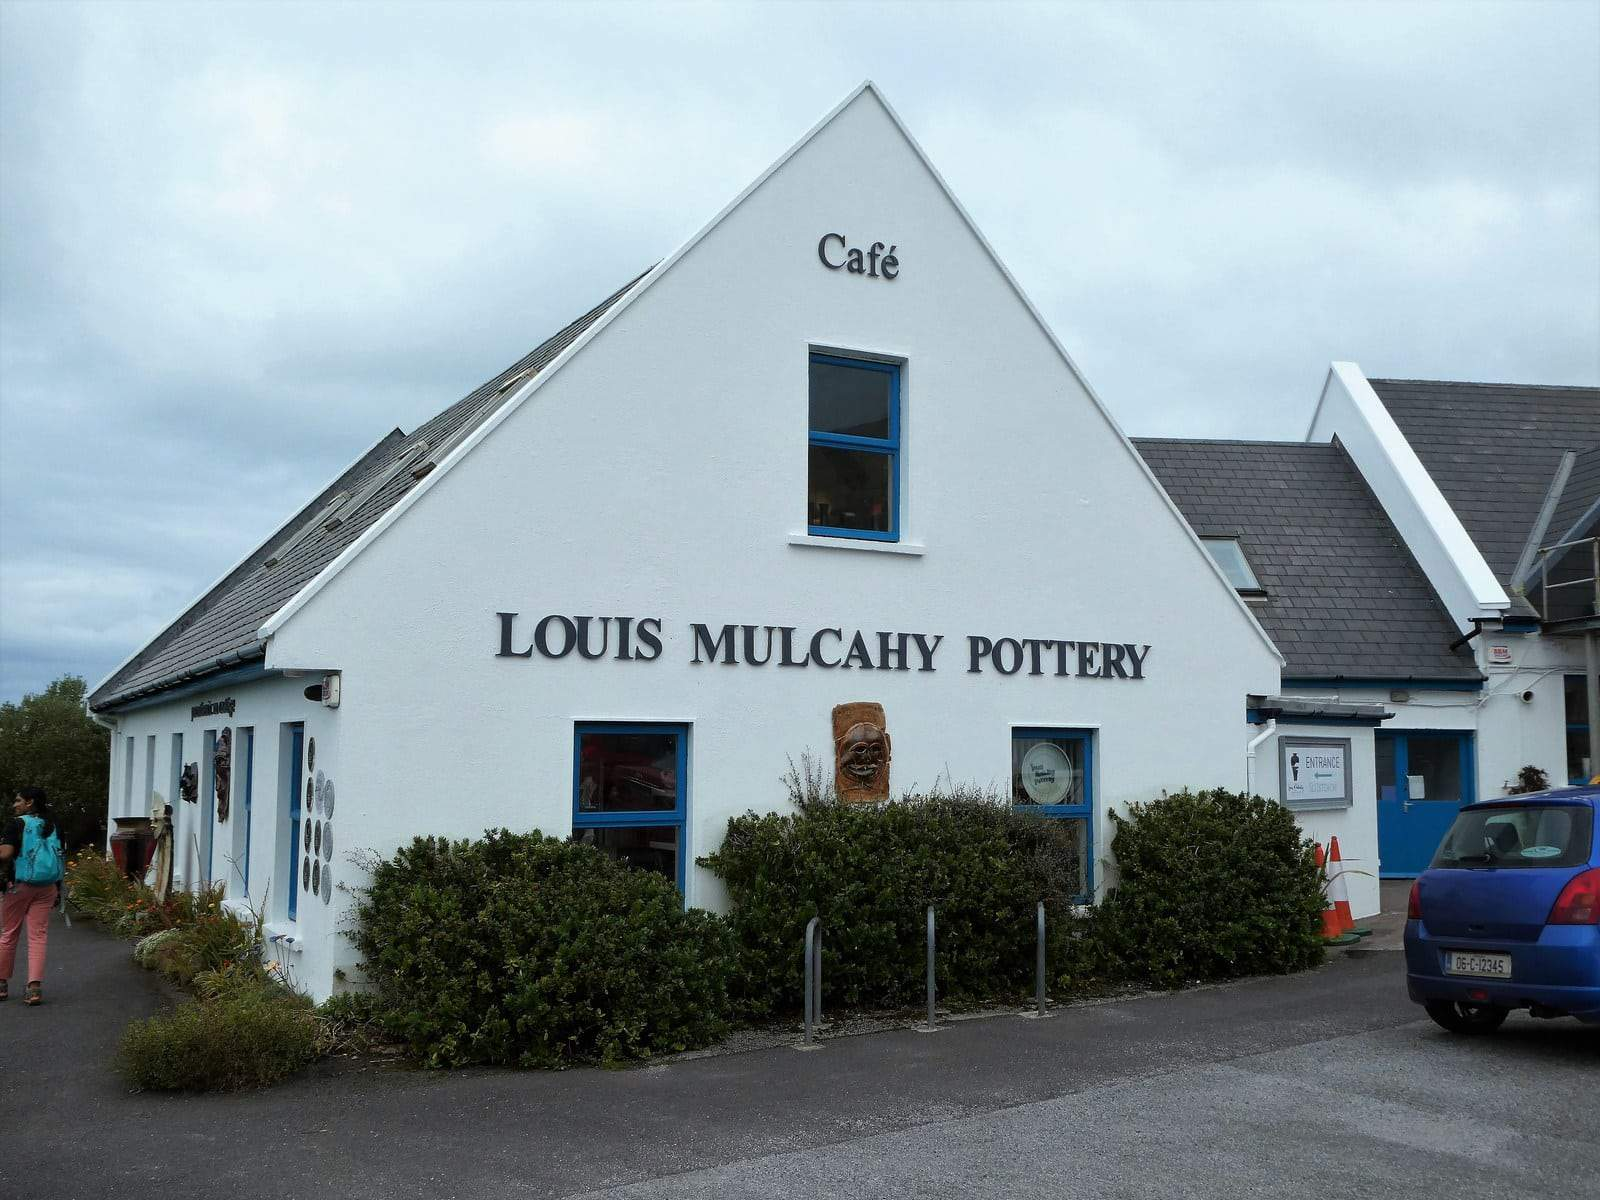 Louis Mulcahy Pottery